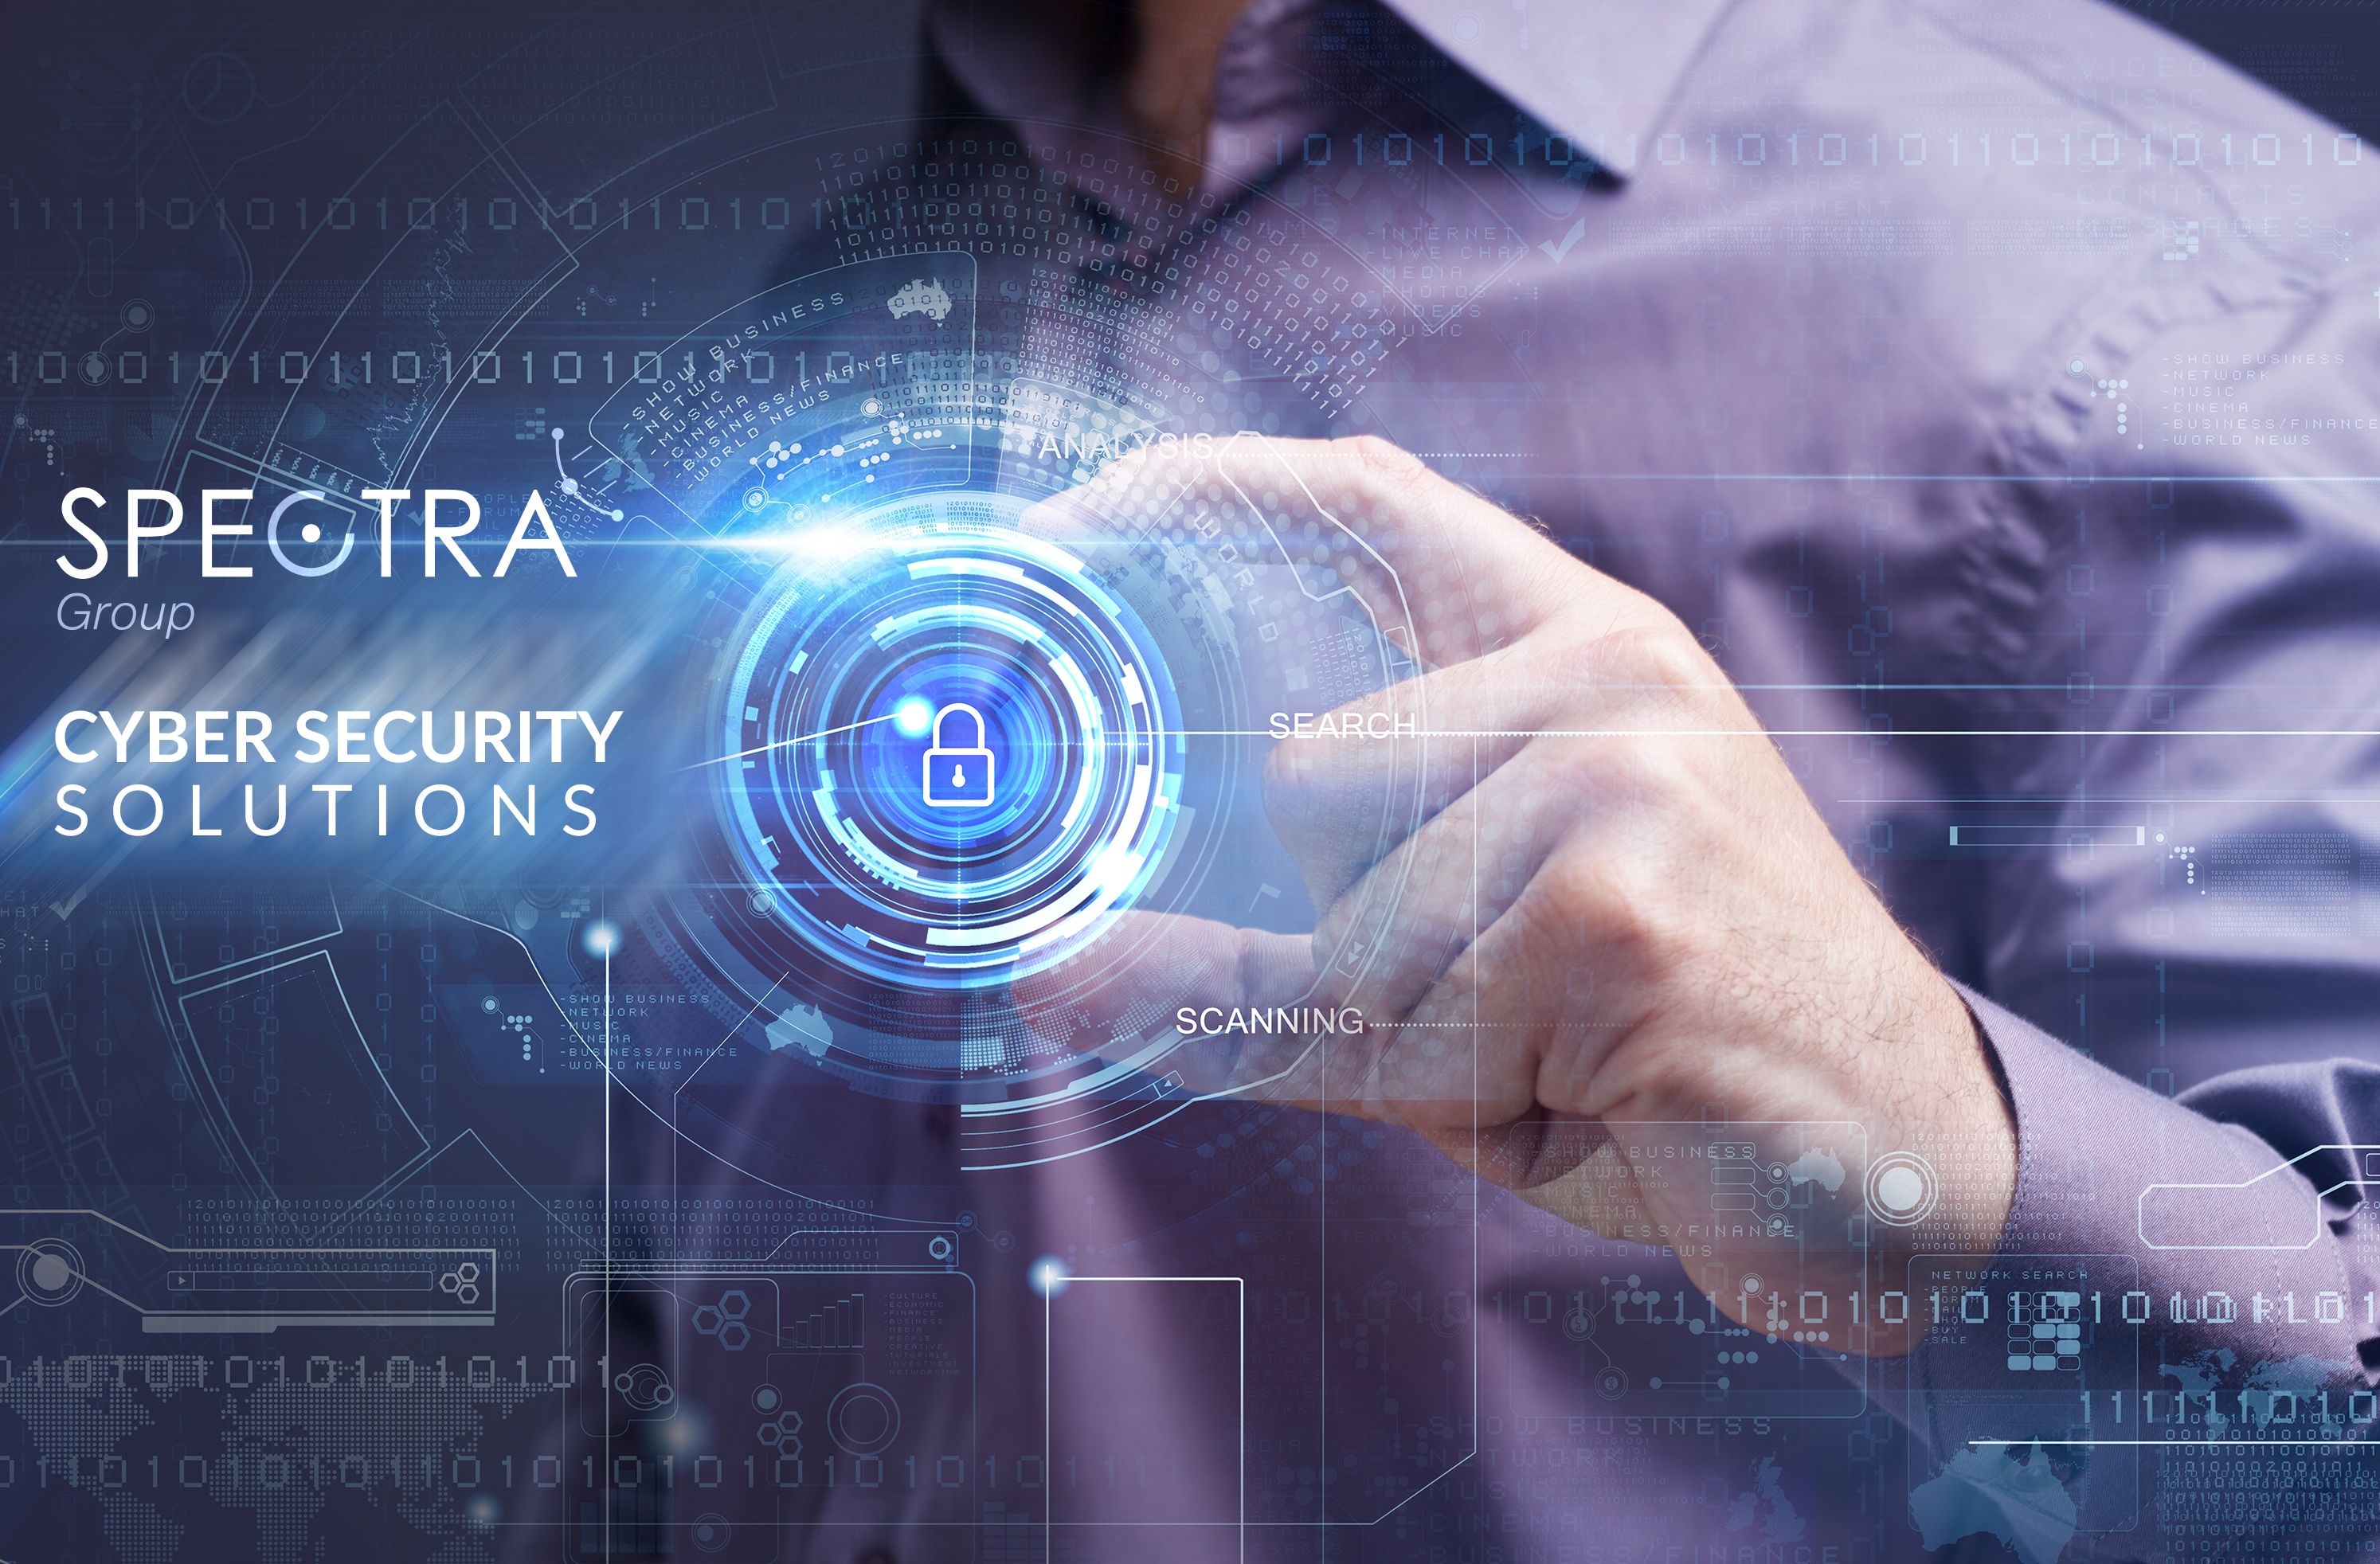 Spectra Cyber Security Solutions ready to defeat the threat